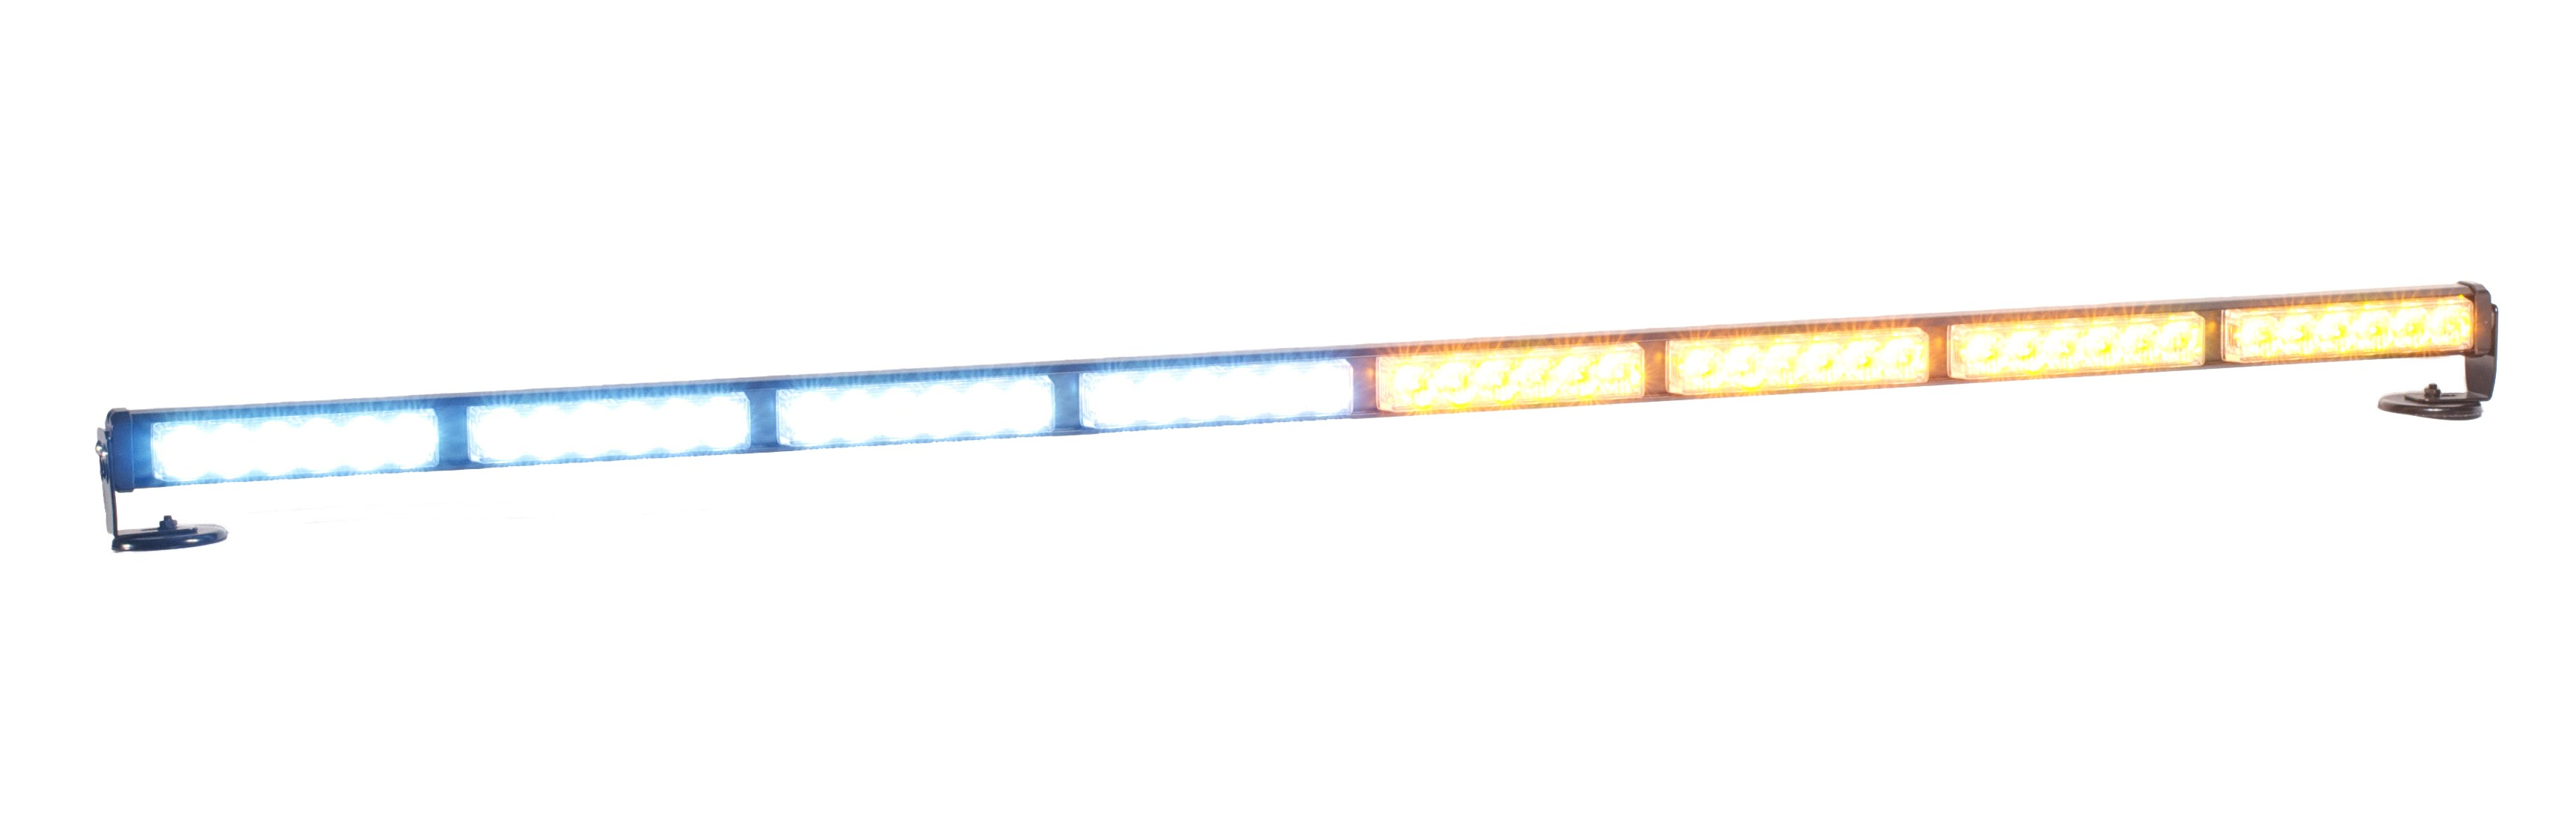 "P8X6 50"" LED Traffic Advisor Police Interior Light Bar Amber / White"